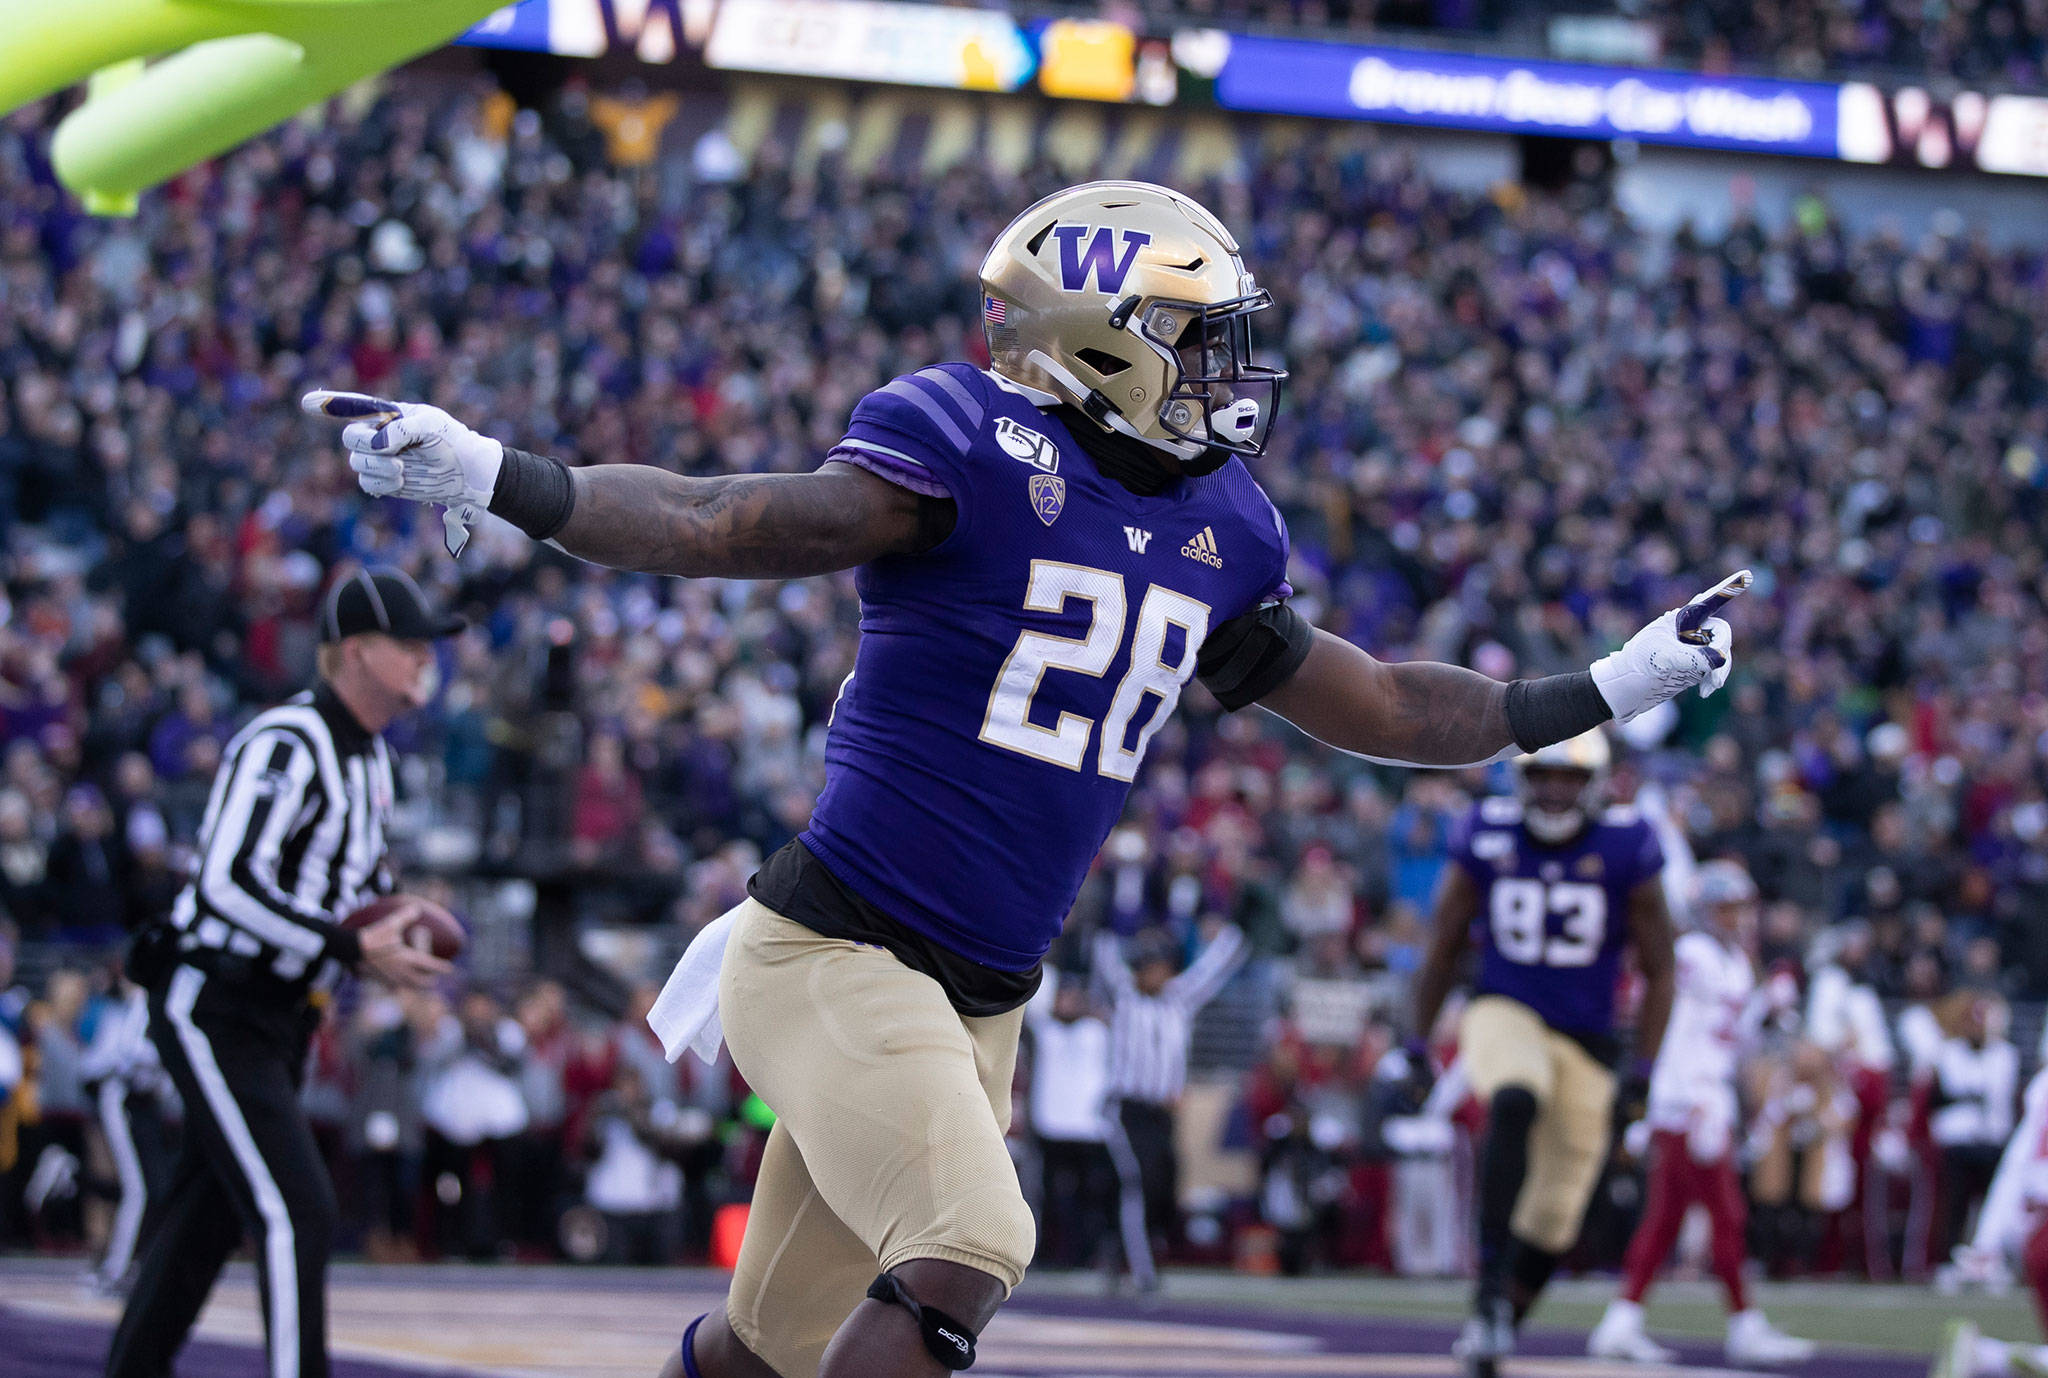 Washington running back Richard Newton celebrates after scoring a touchdown during the first half of the Apple Cup against Washington State on Nov. 29, 2019 in Seattle. (AP Photo/Stephen Brashear)